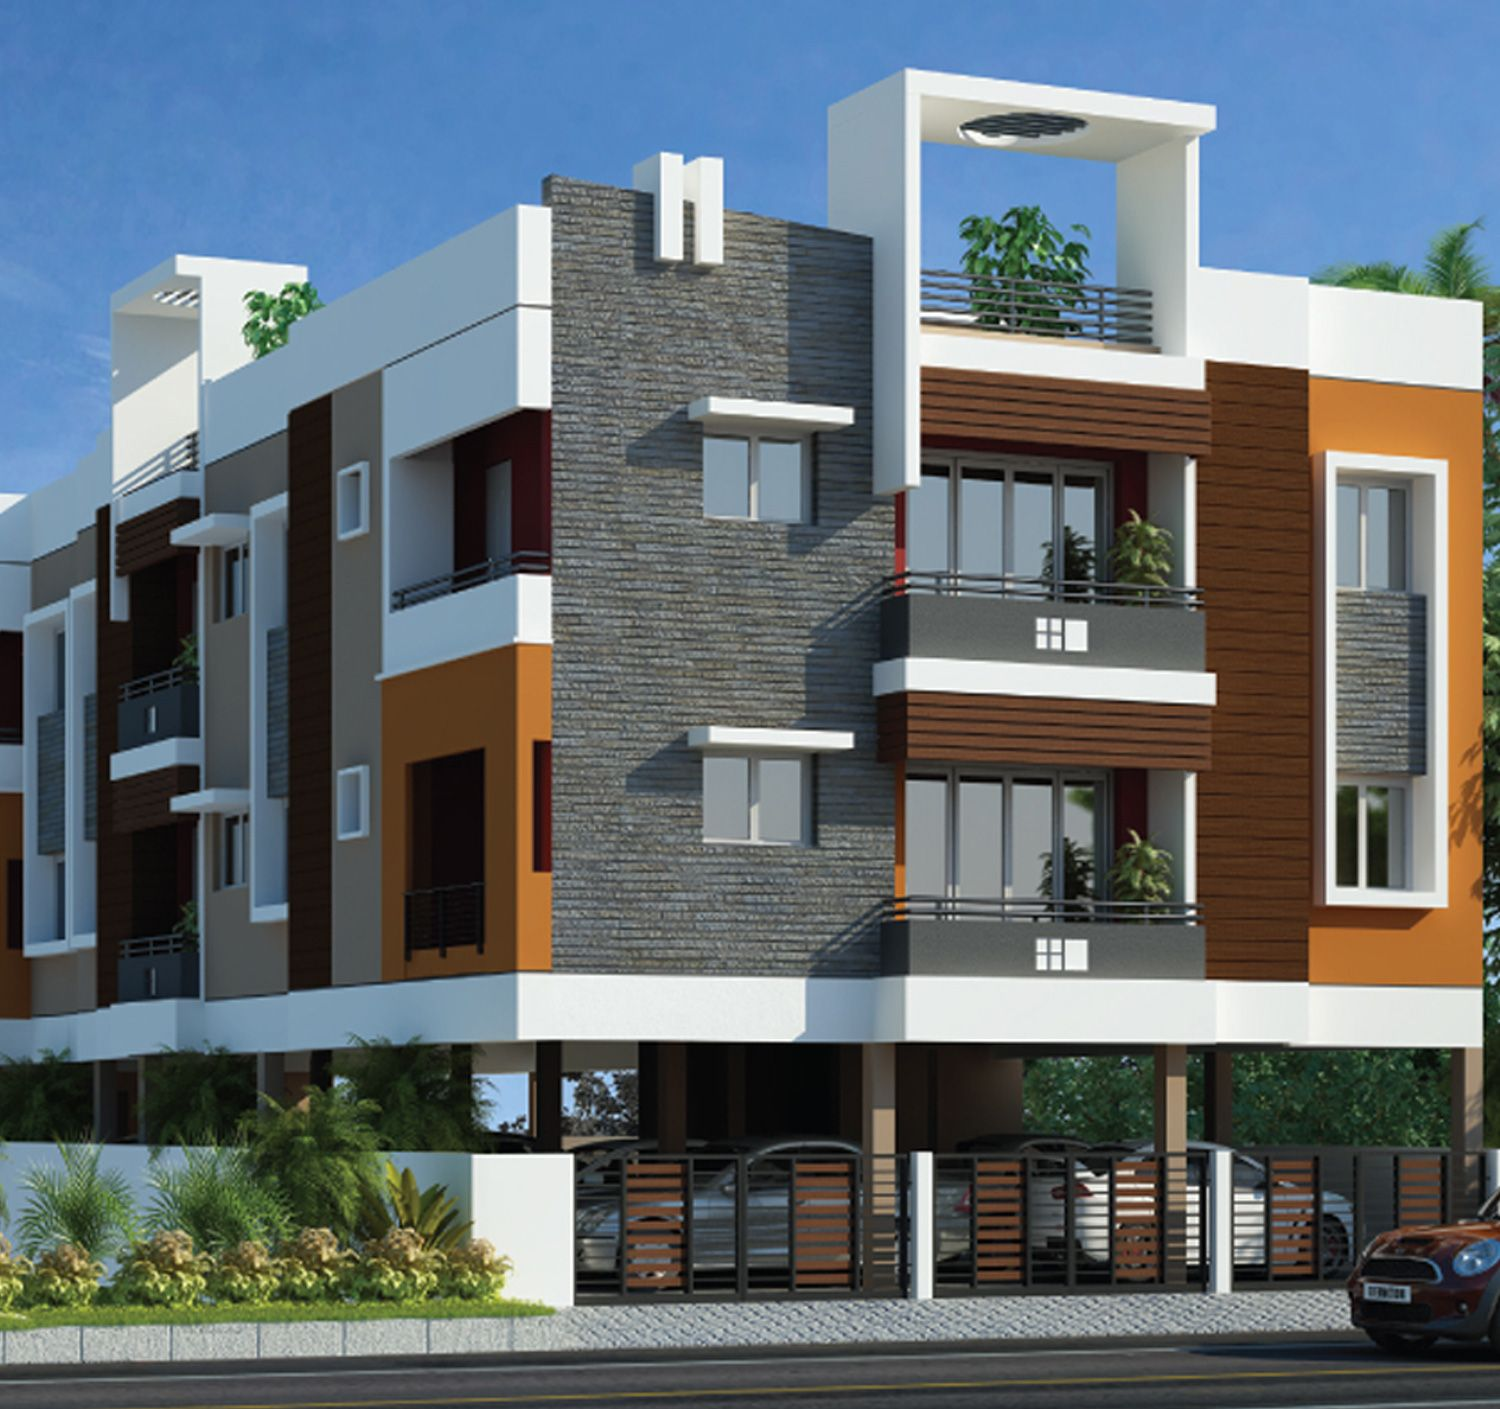 The Award Winning Architecture Firm Building Quick Modular Homes: Get The Best Located Plots And Row Houses In Indore With